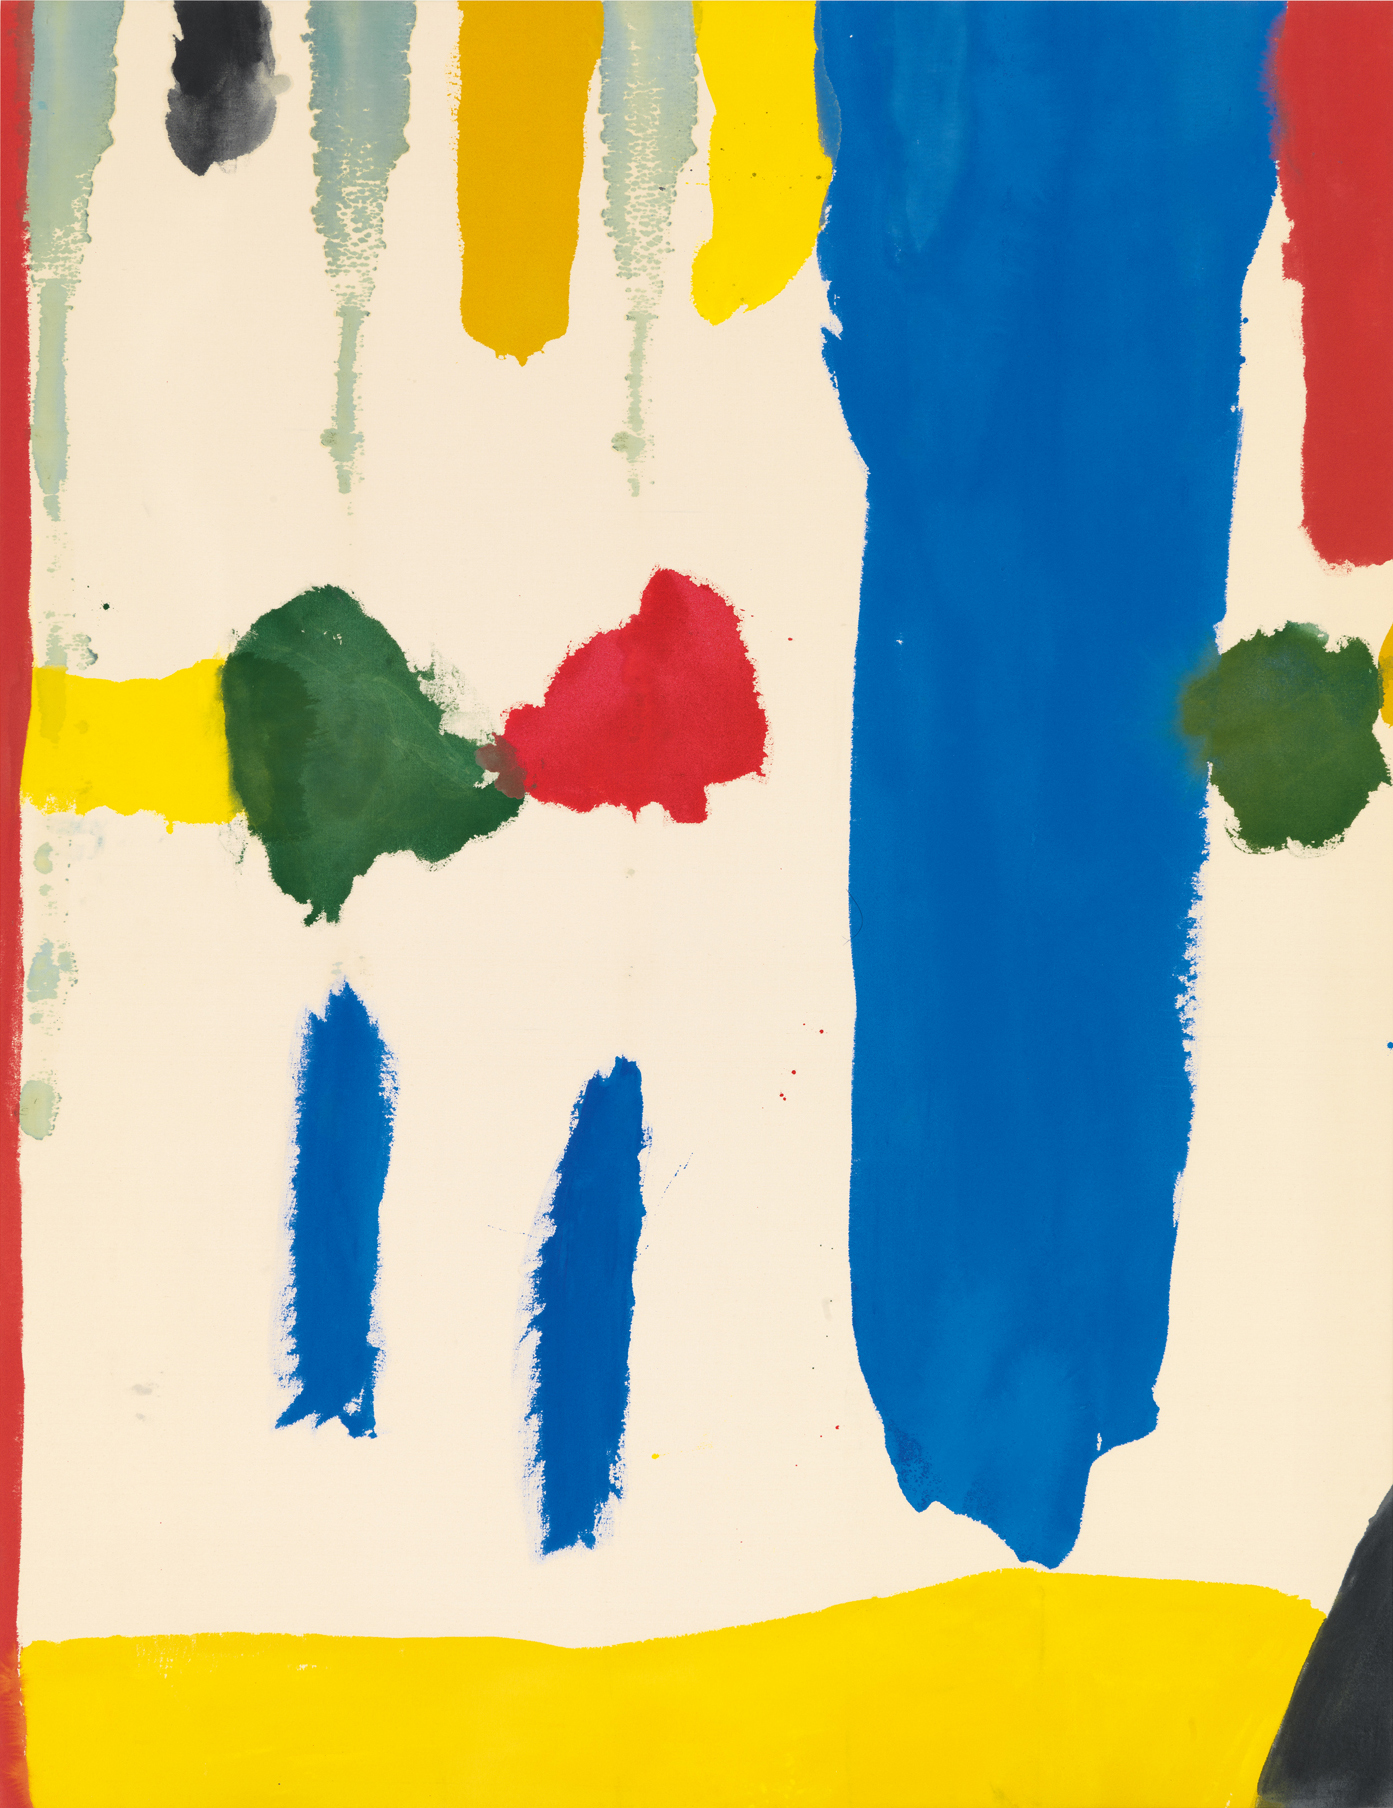 Helen Frankenthaler,  Parade , 1965,Acrylic on canvas,73 × 56 1/2 inches (185.4 × 143.5 cm),© 2016 Helen Frankenthaler Foundation, Inc./Artists Rights Society (ARS), New York.Photo by Rob McKeever